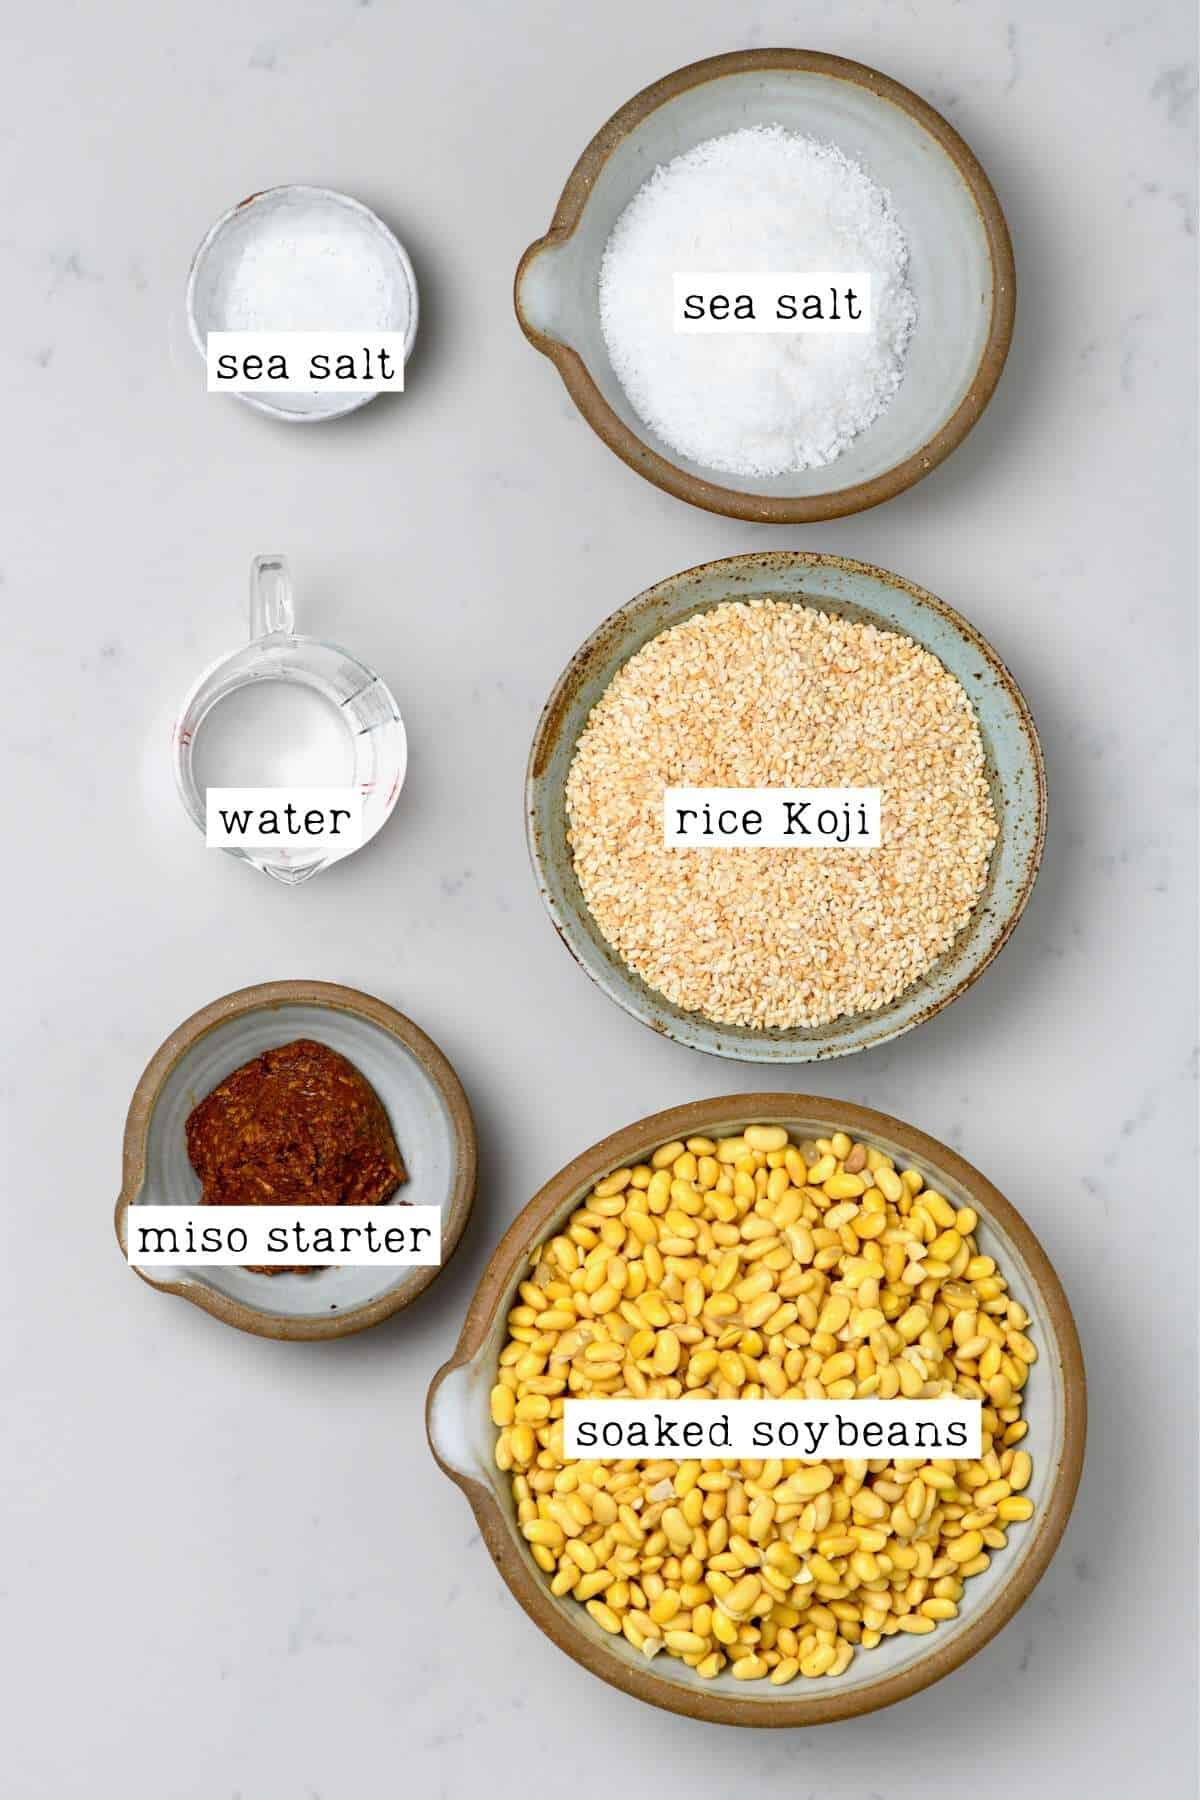 Ingredients for miso paste